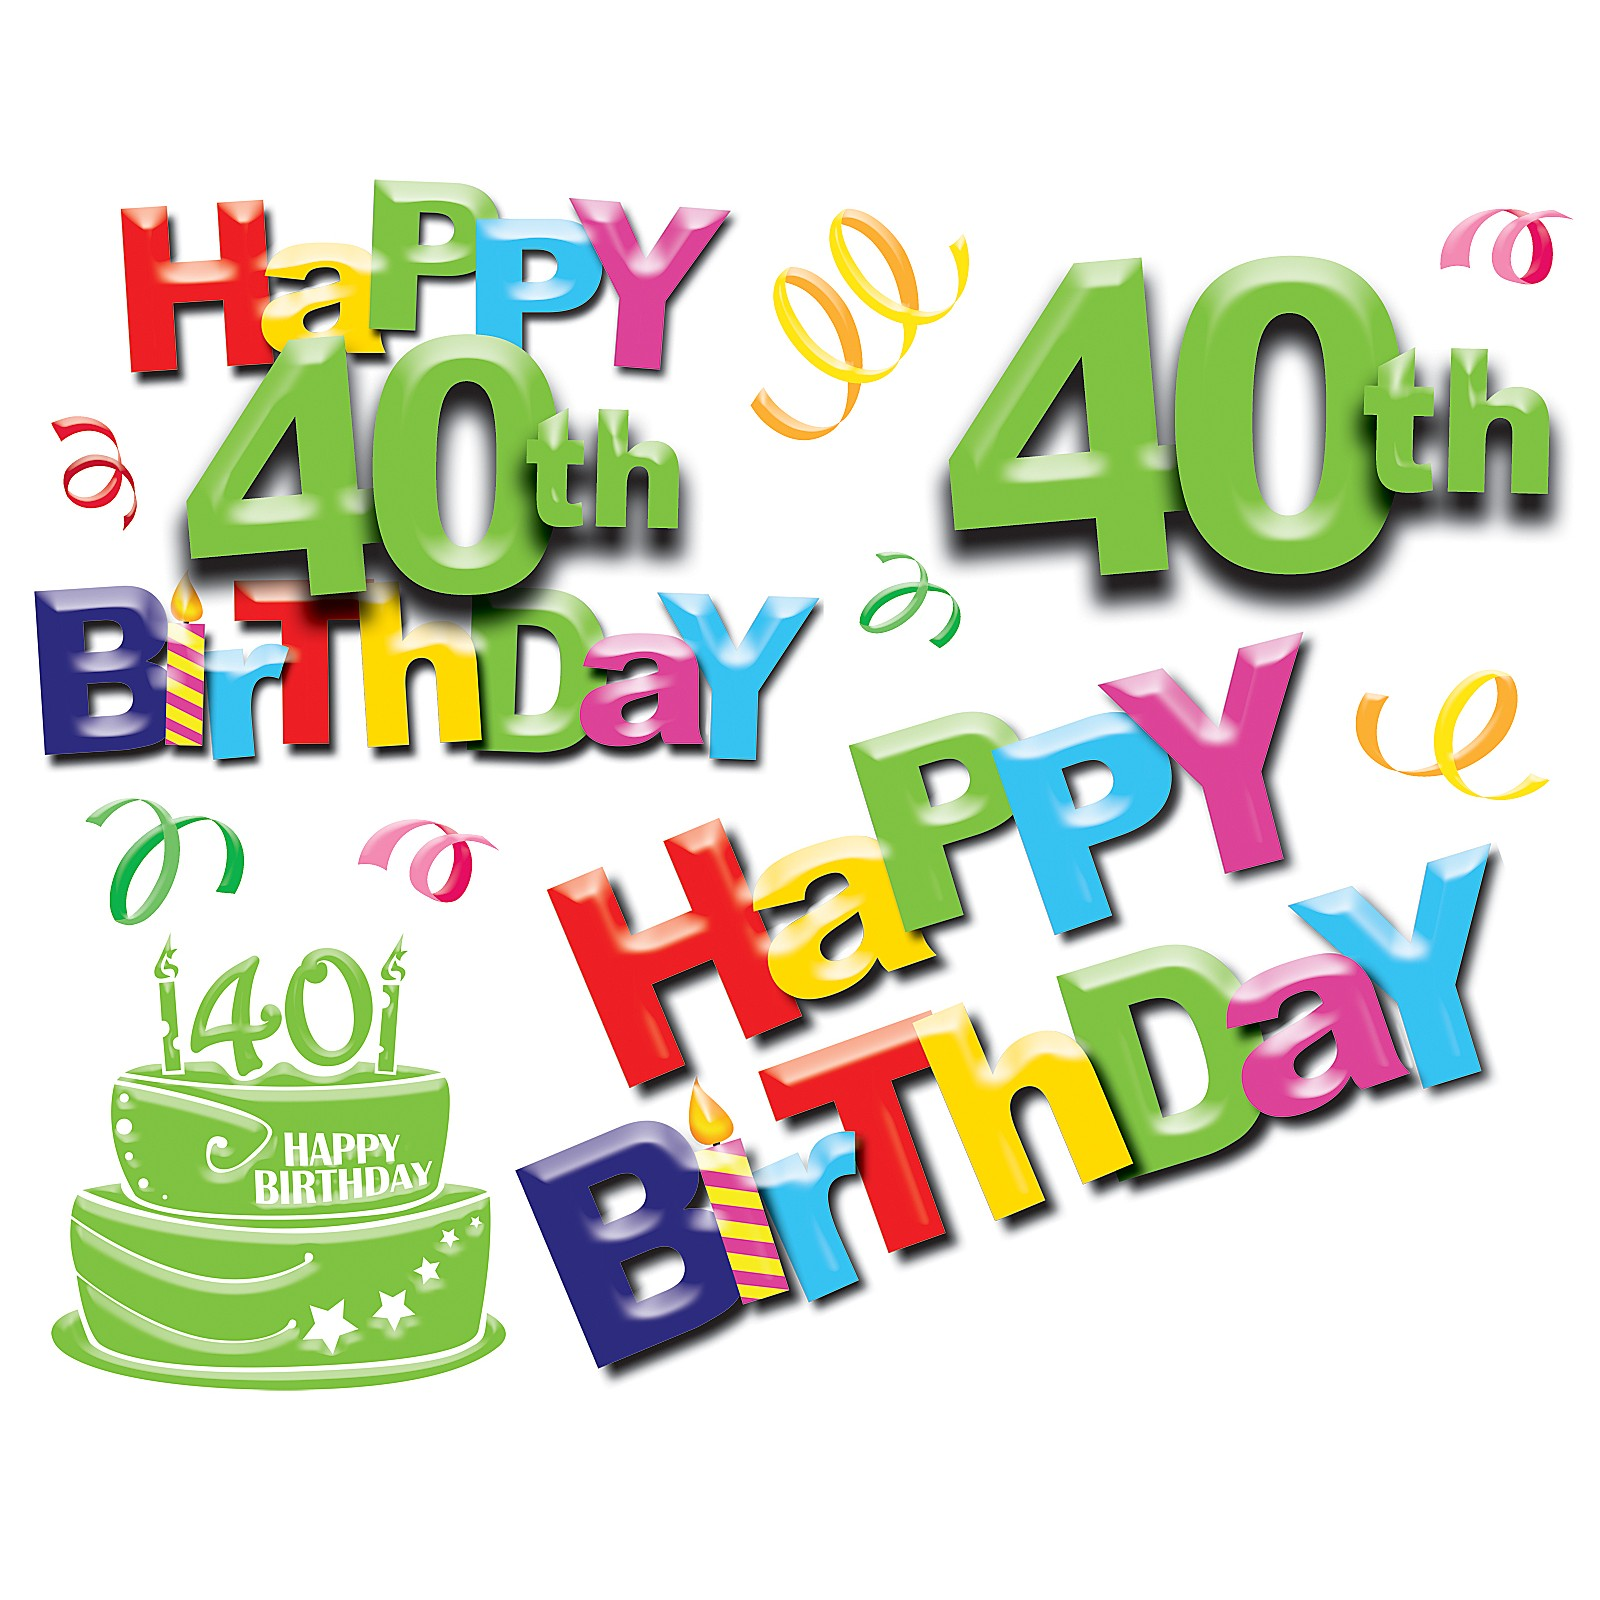 Free 40 Year Birthday Cliparts, Download Free Clip Art, Free Clip ... transparent download